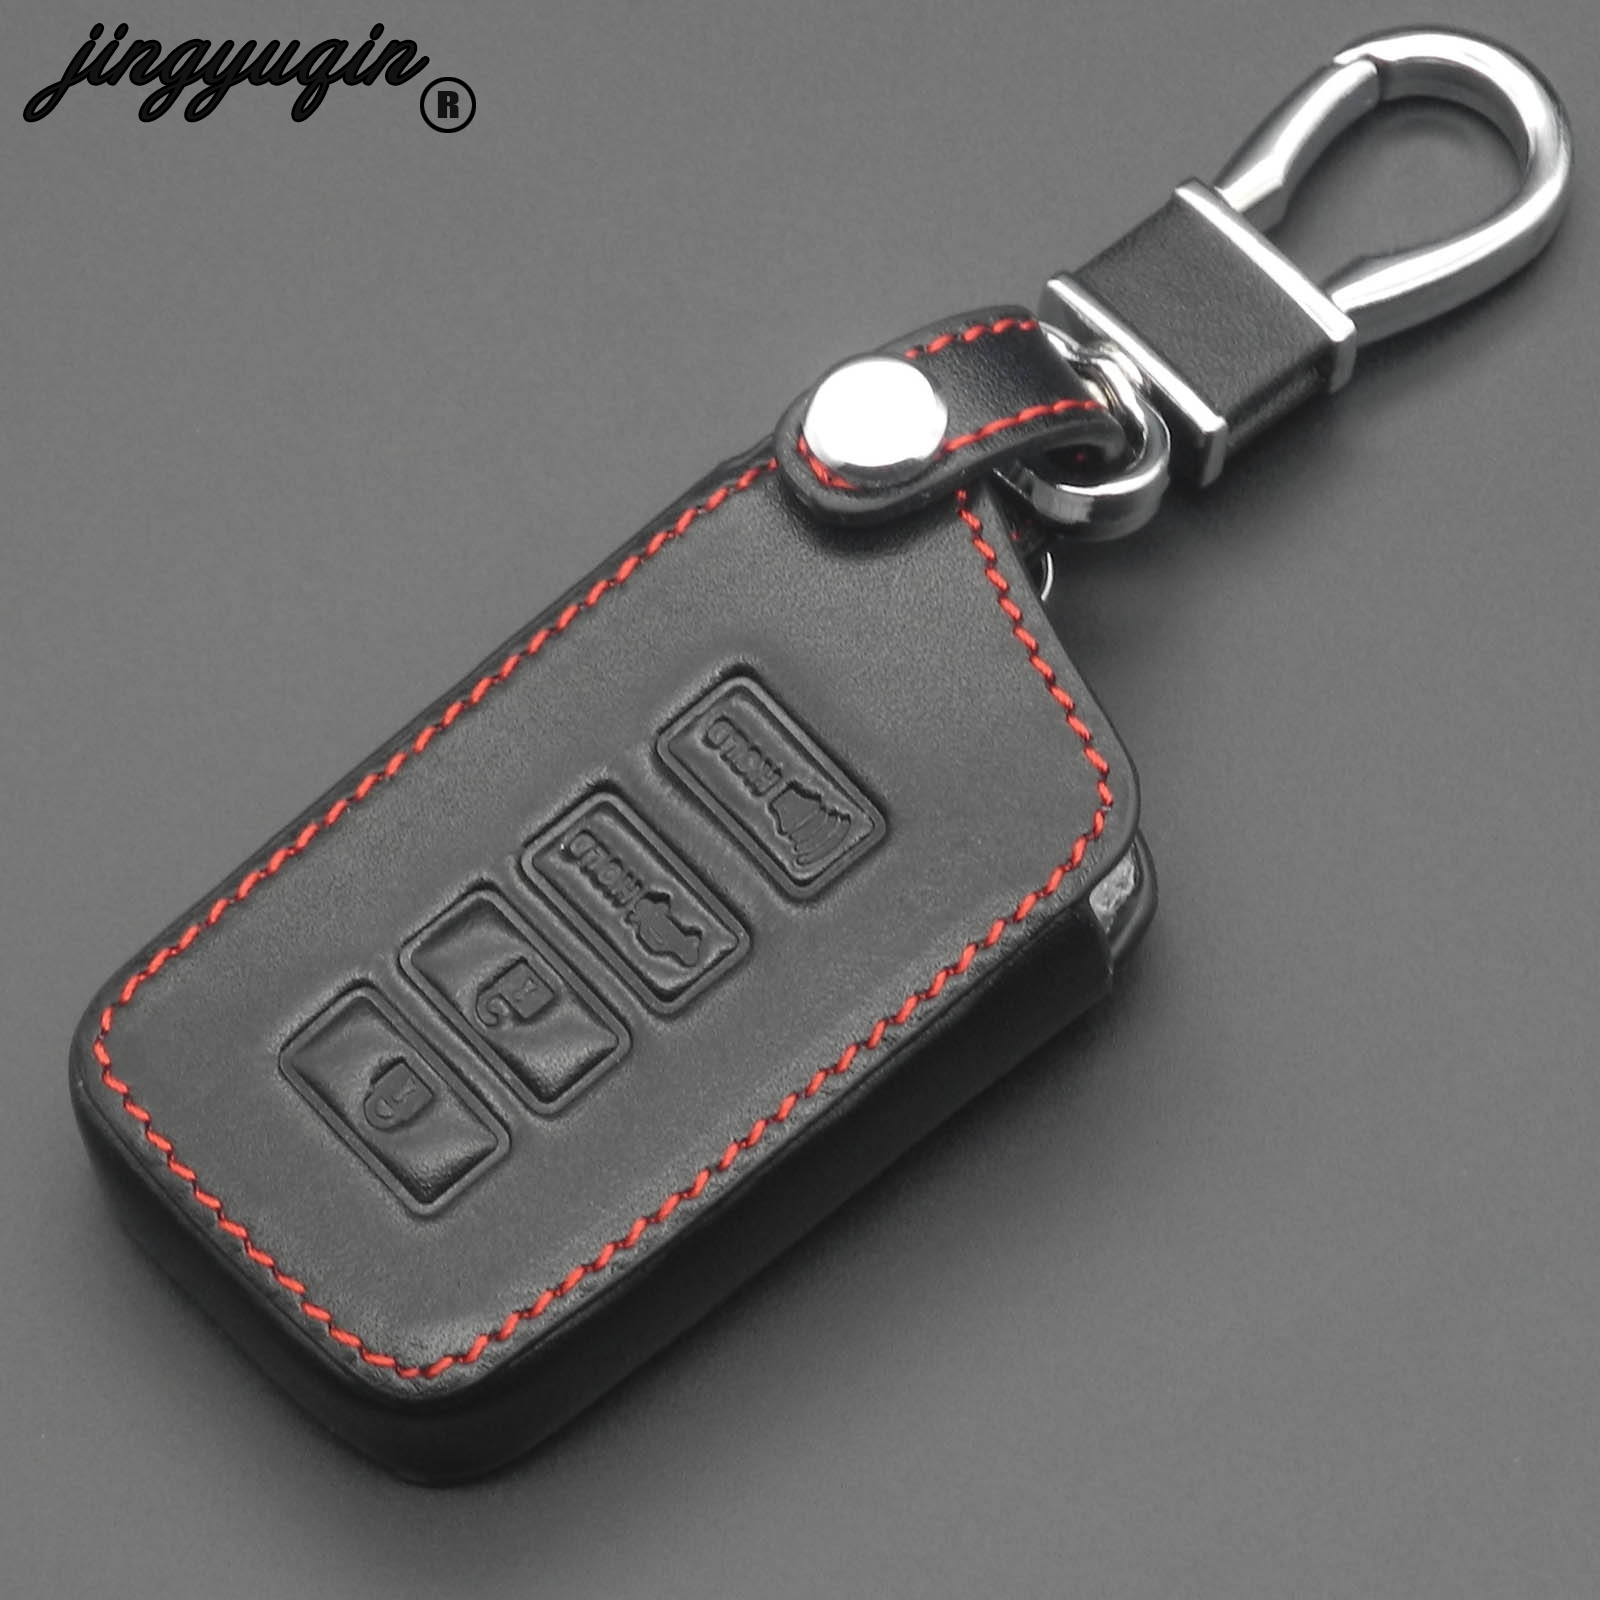 jingyuqin 4 Buttons Car Key Cover Leather Fob For <font><b>LEXUS</b></font> NX 200 NX300H <font><b>RX</b></font> <font><b>350</b></font> 450H ES <font><b>350</b></font> GS IS GS RC F <font><b>2014</b></font> 2015 2016 keychain image